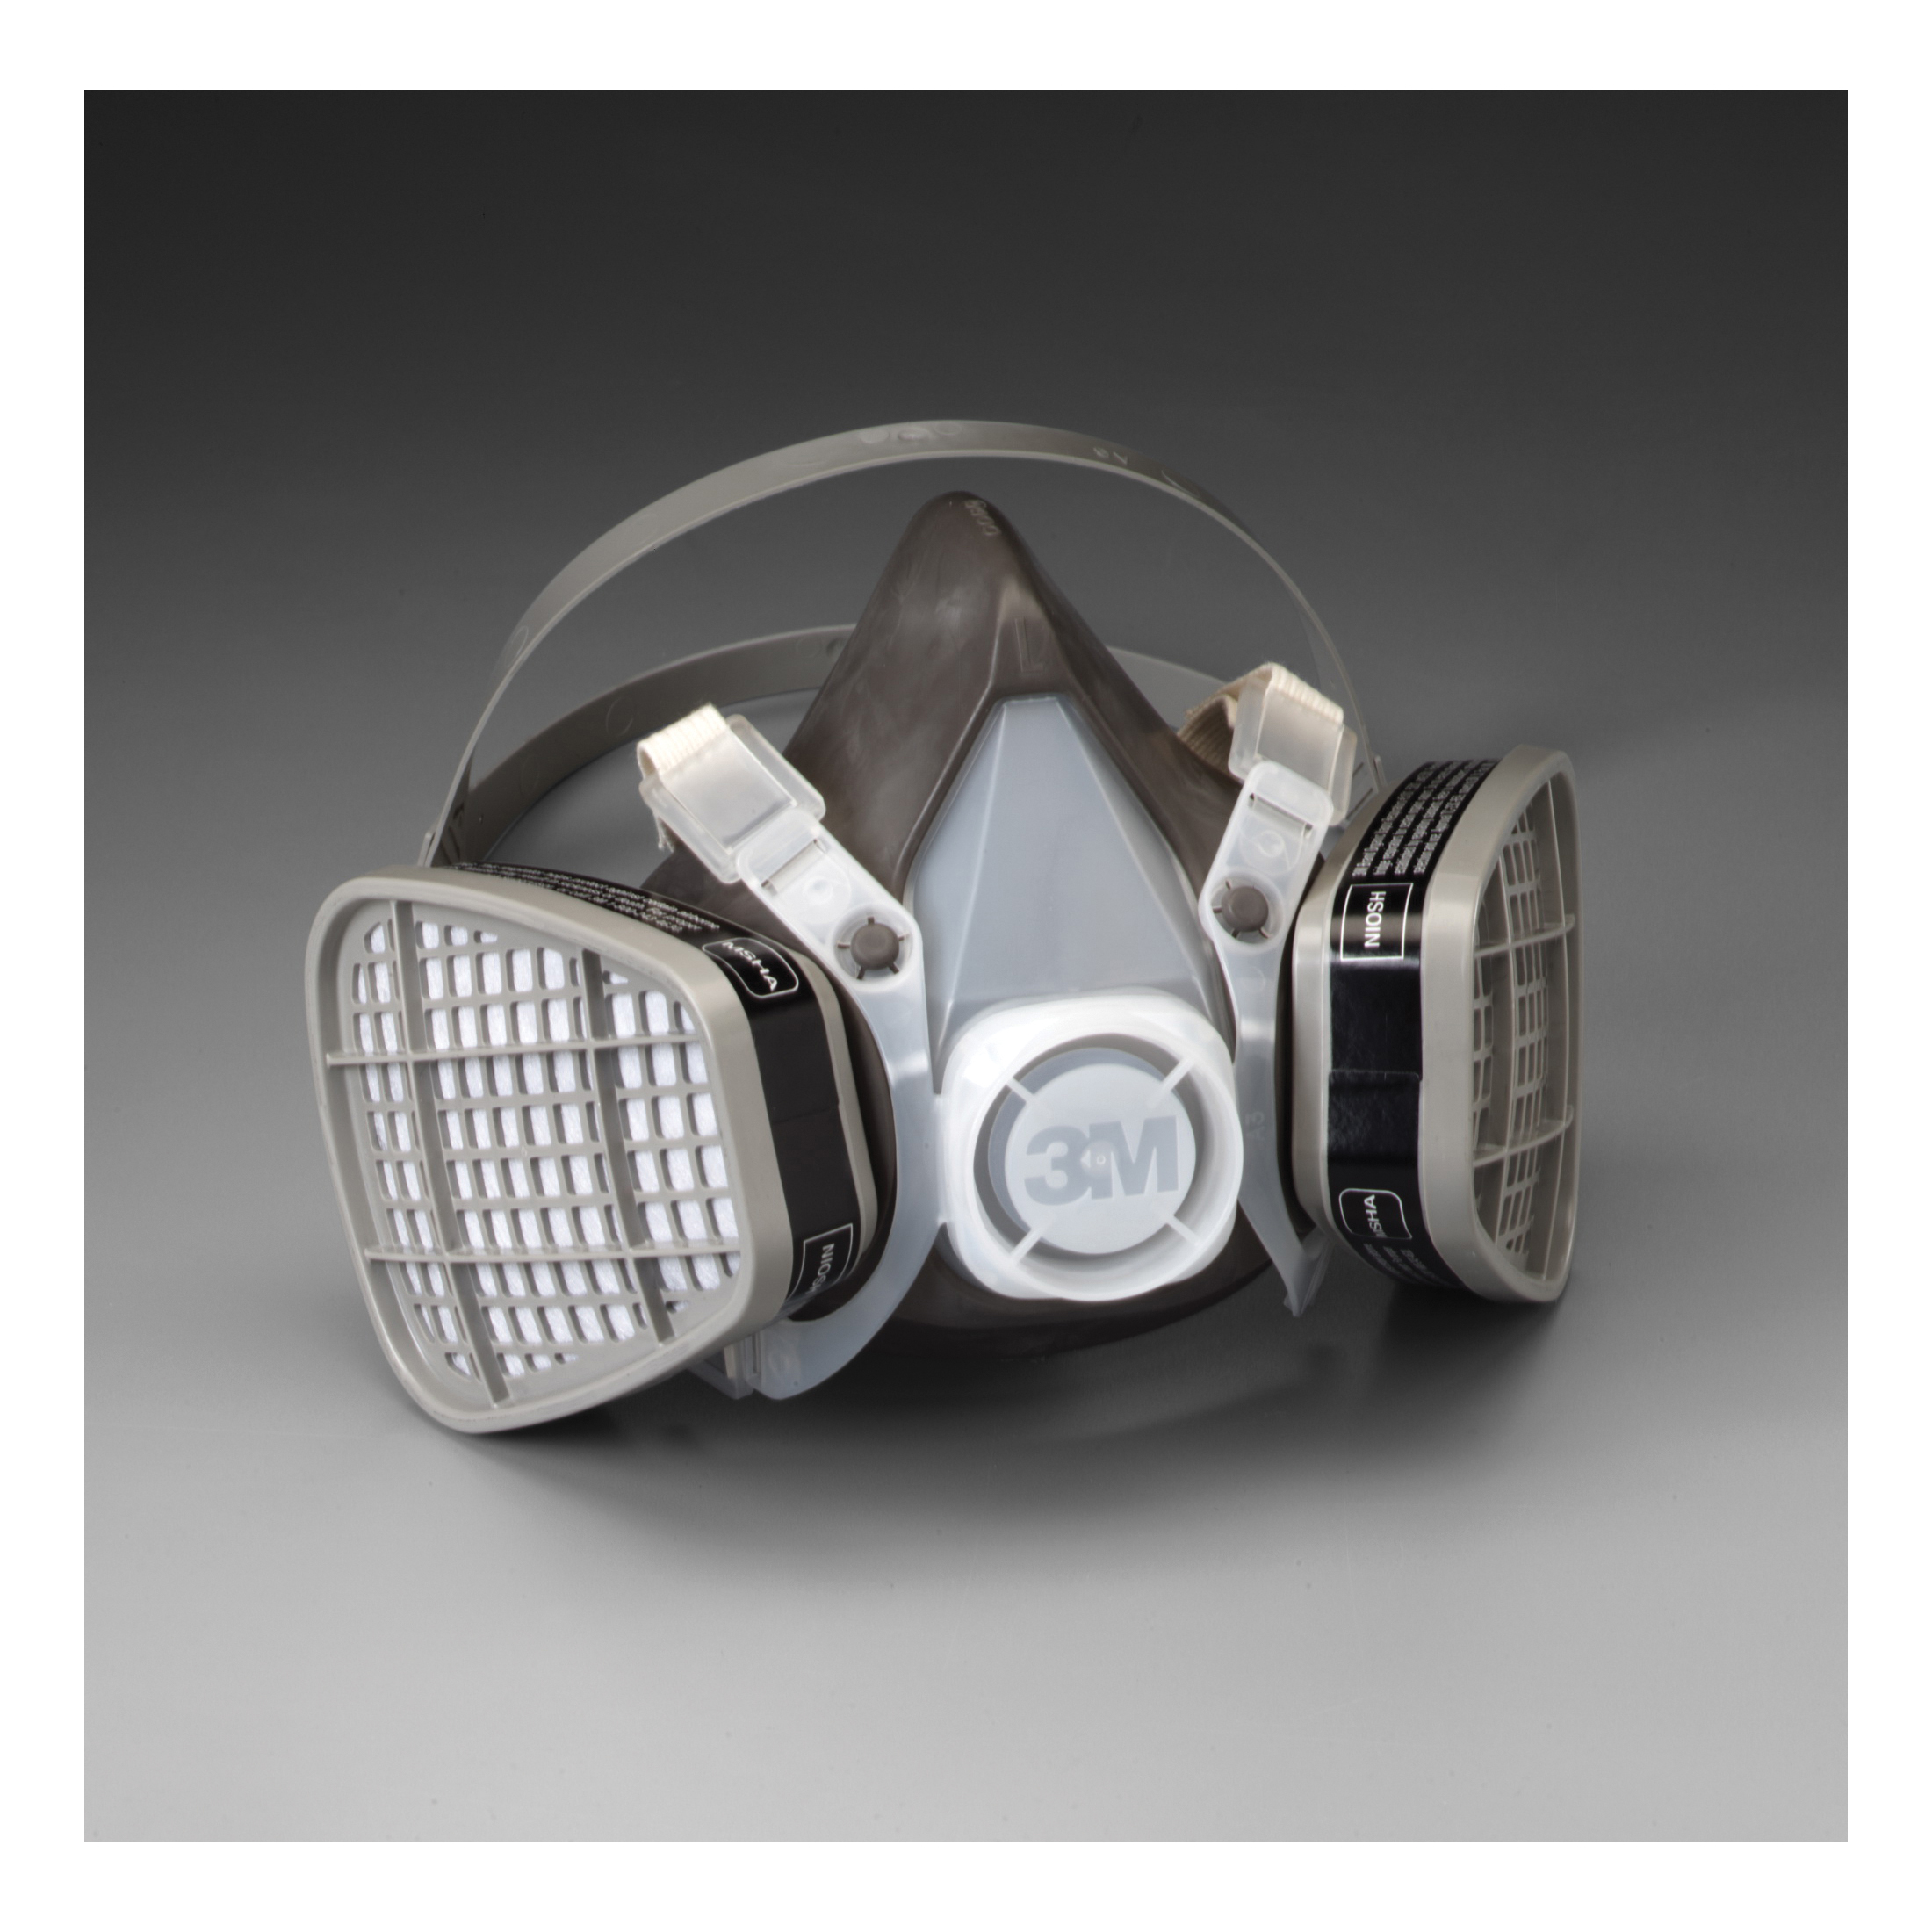 3M™ 051138-21577 5301 5000 Disposable Half Facepiece Respirator Assembly, L, Resists: Acid Gas, Chlorine, Hydrogen Chloride, Hydrogen Fluoride, Hydrogen Sulfide, Organic Vapors and Sulfur Dioxide